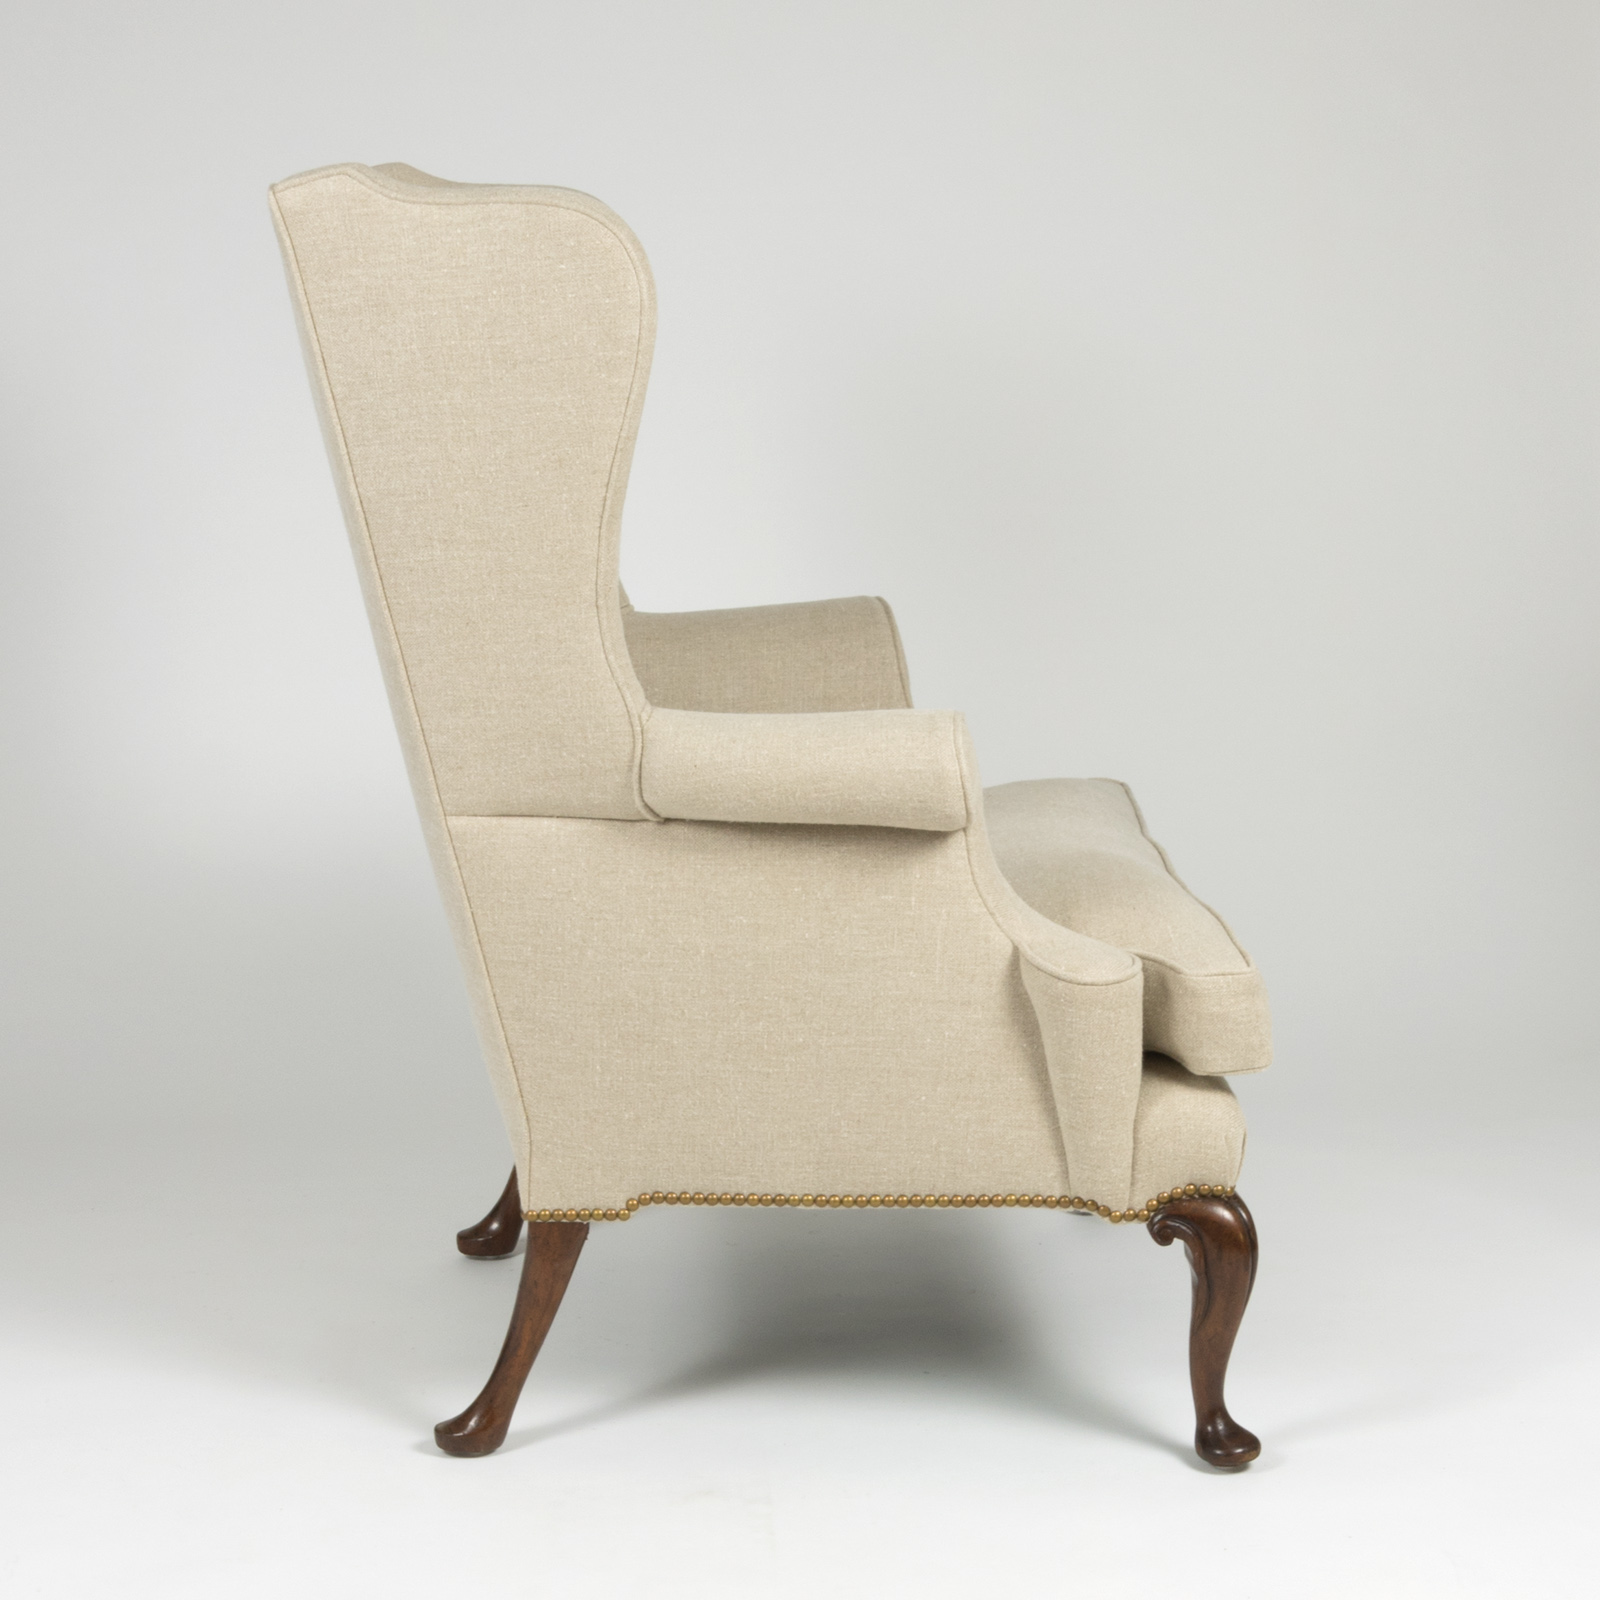 Wing Chair Handsome Mahogany Frame Upholstered Wing Chair With Rams Head Carved Legs English Circa 1880